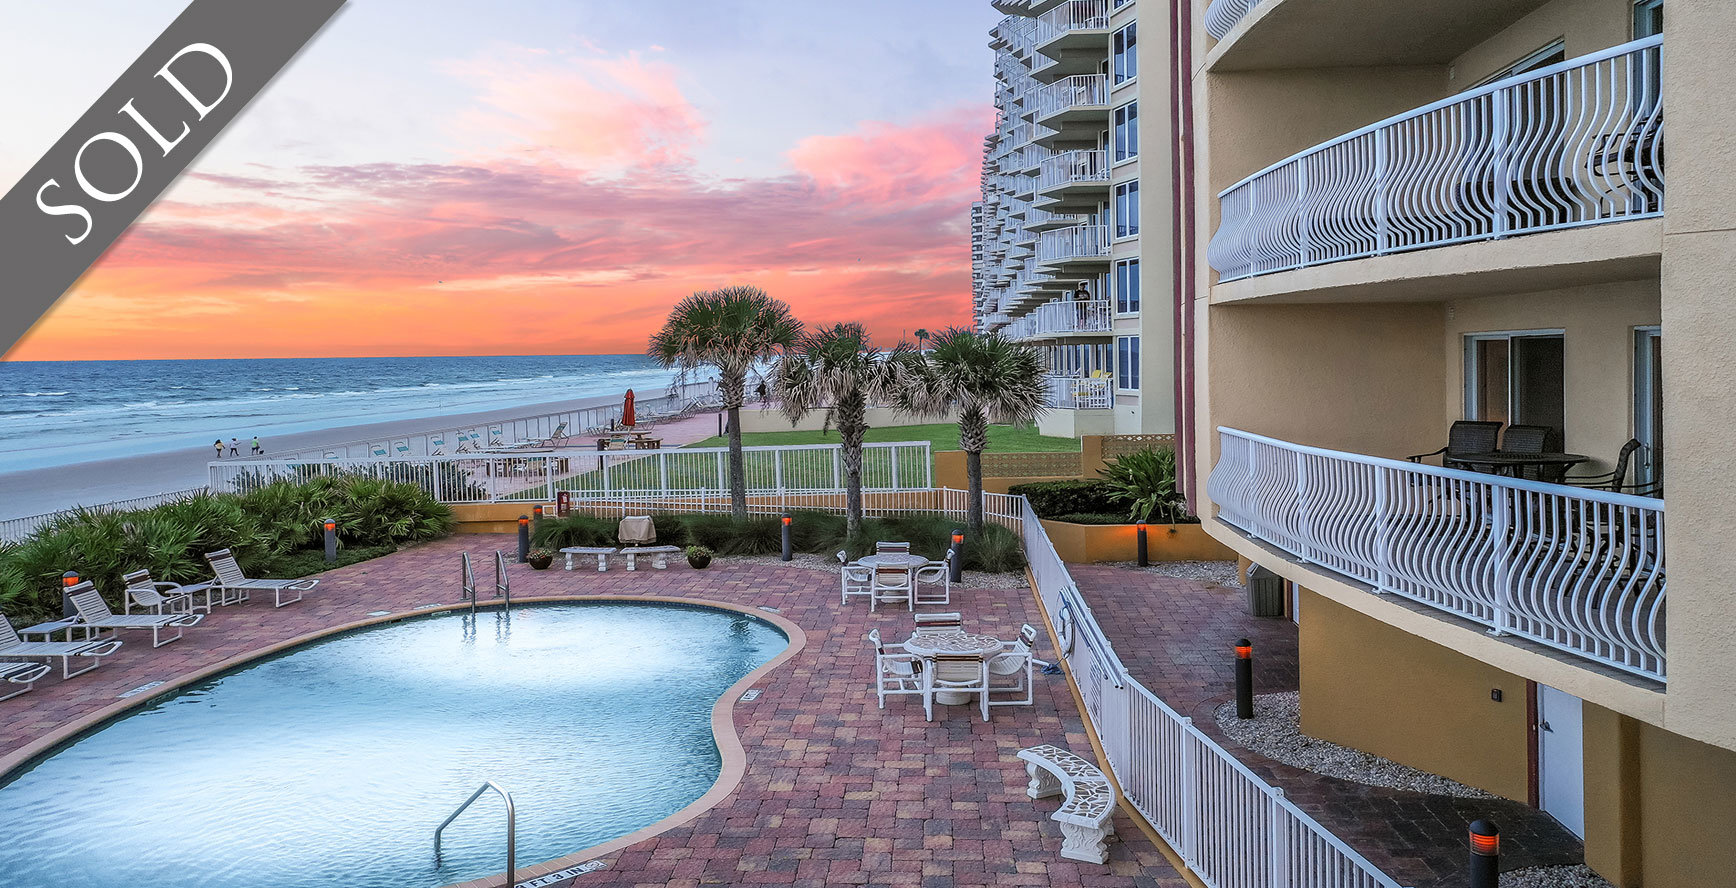 Palmas de Mallorca Condos For Sale Oceanfront Real Estate at 3811 S Atlantic Ave Daytona Beach Shores , FL  Sold